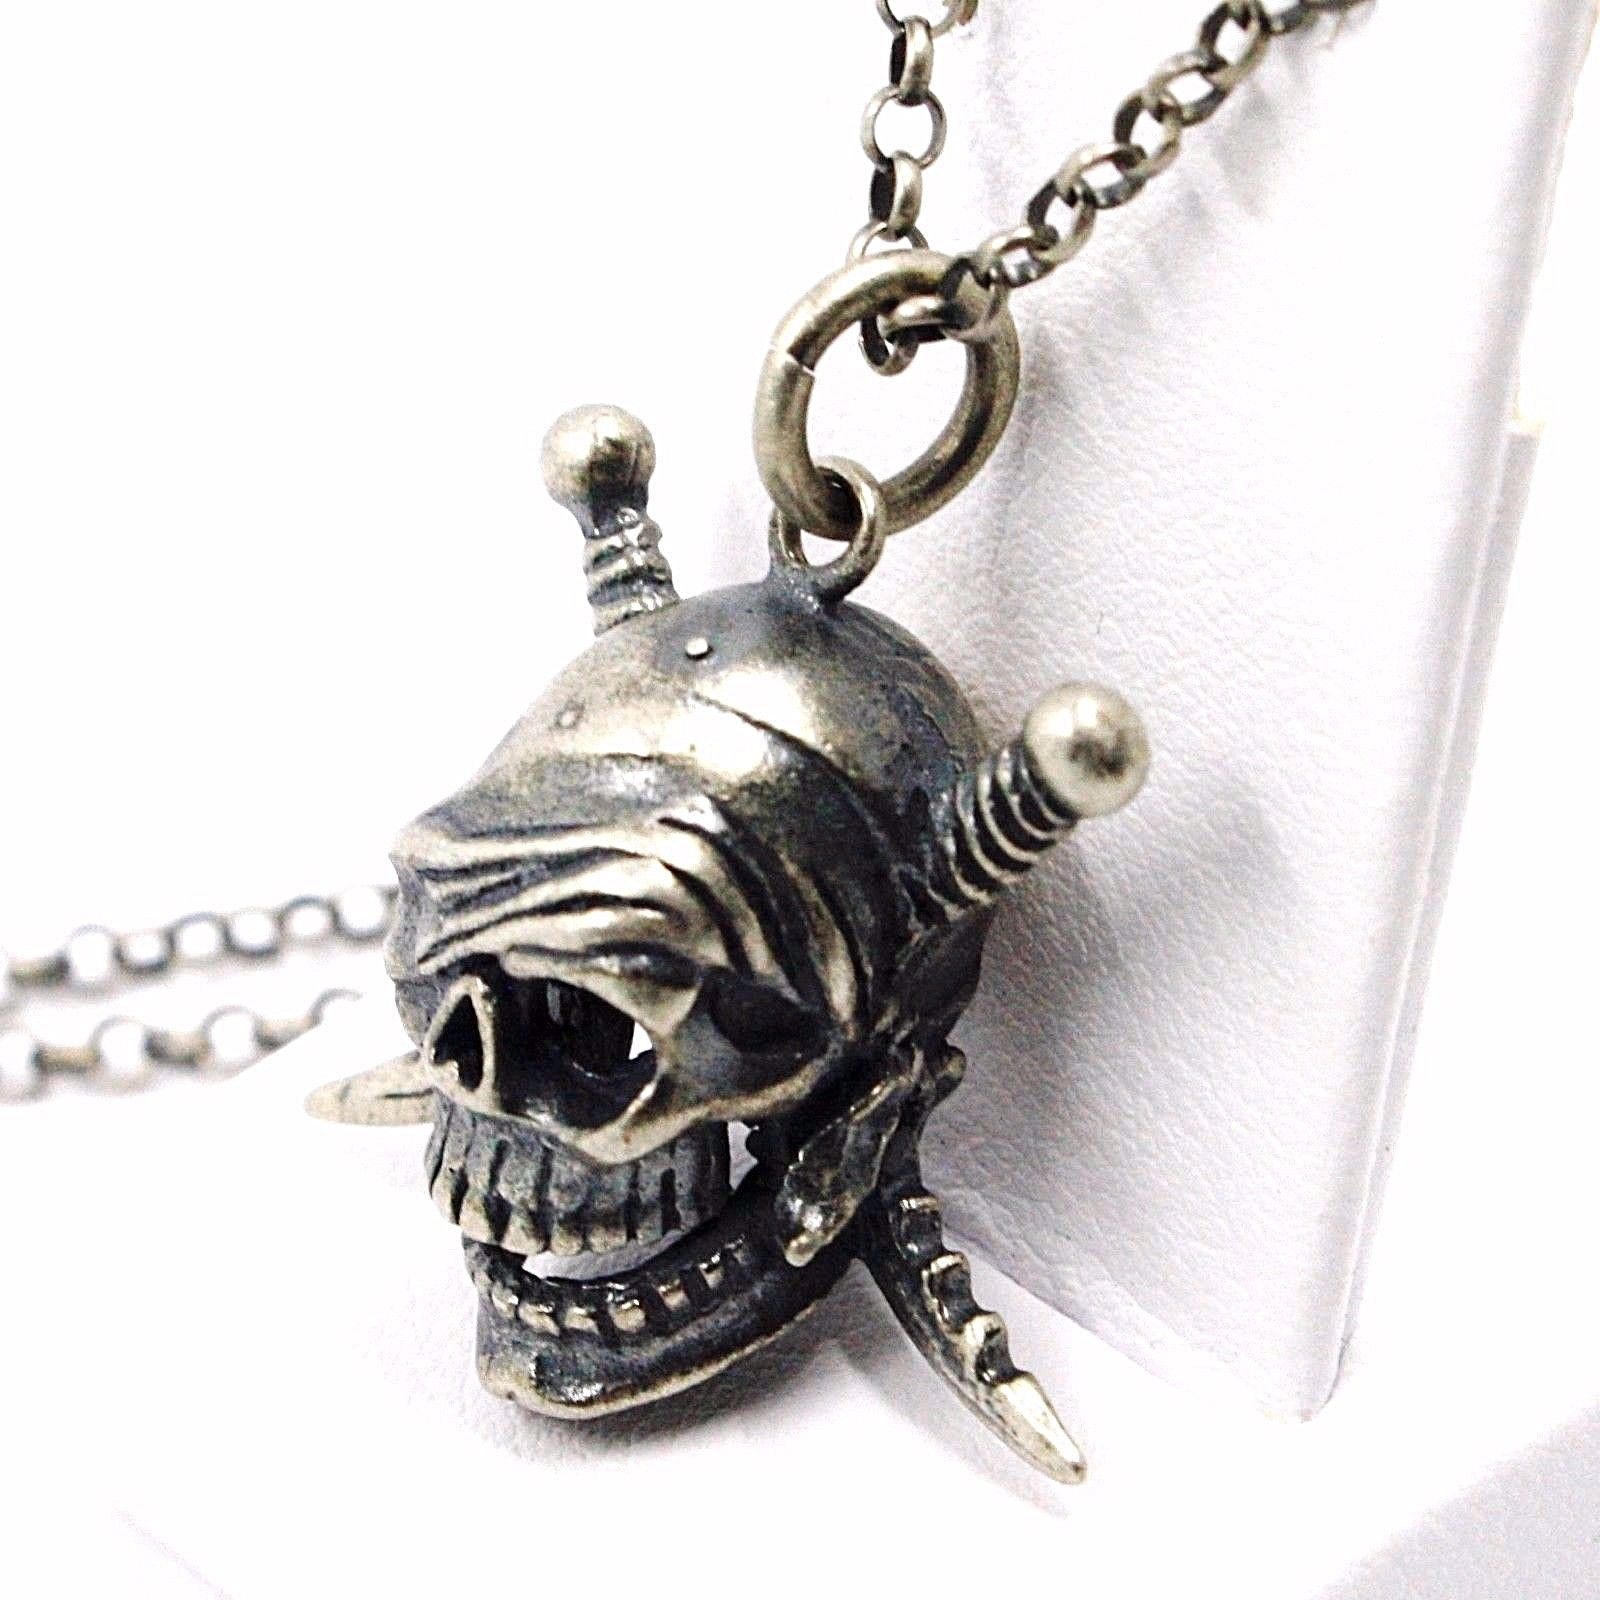 NECKLACE AND PENDANT, 925 SILVER, BURNISHED SATIN, PIRATE SKULL, CHAIN ROLO'